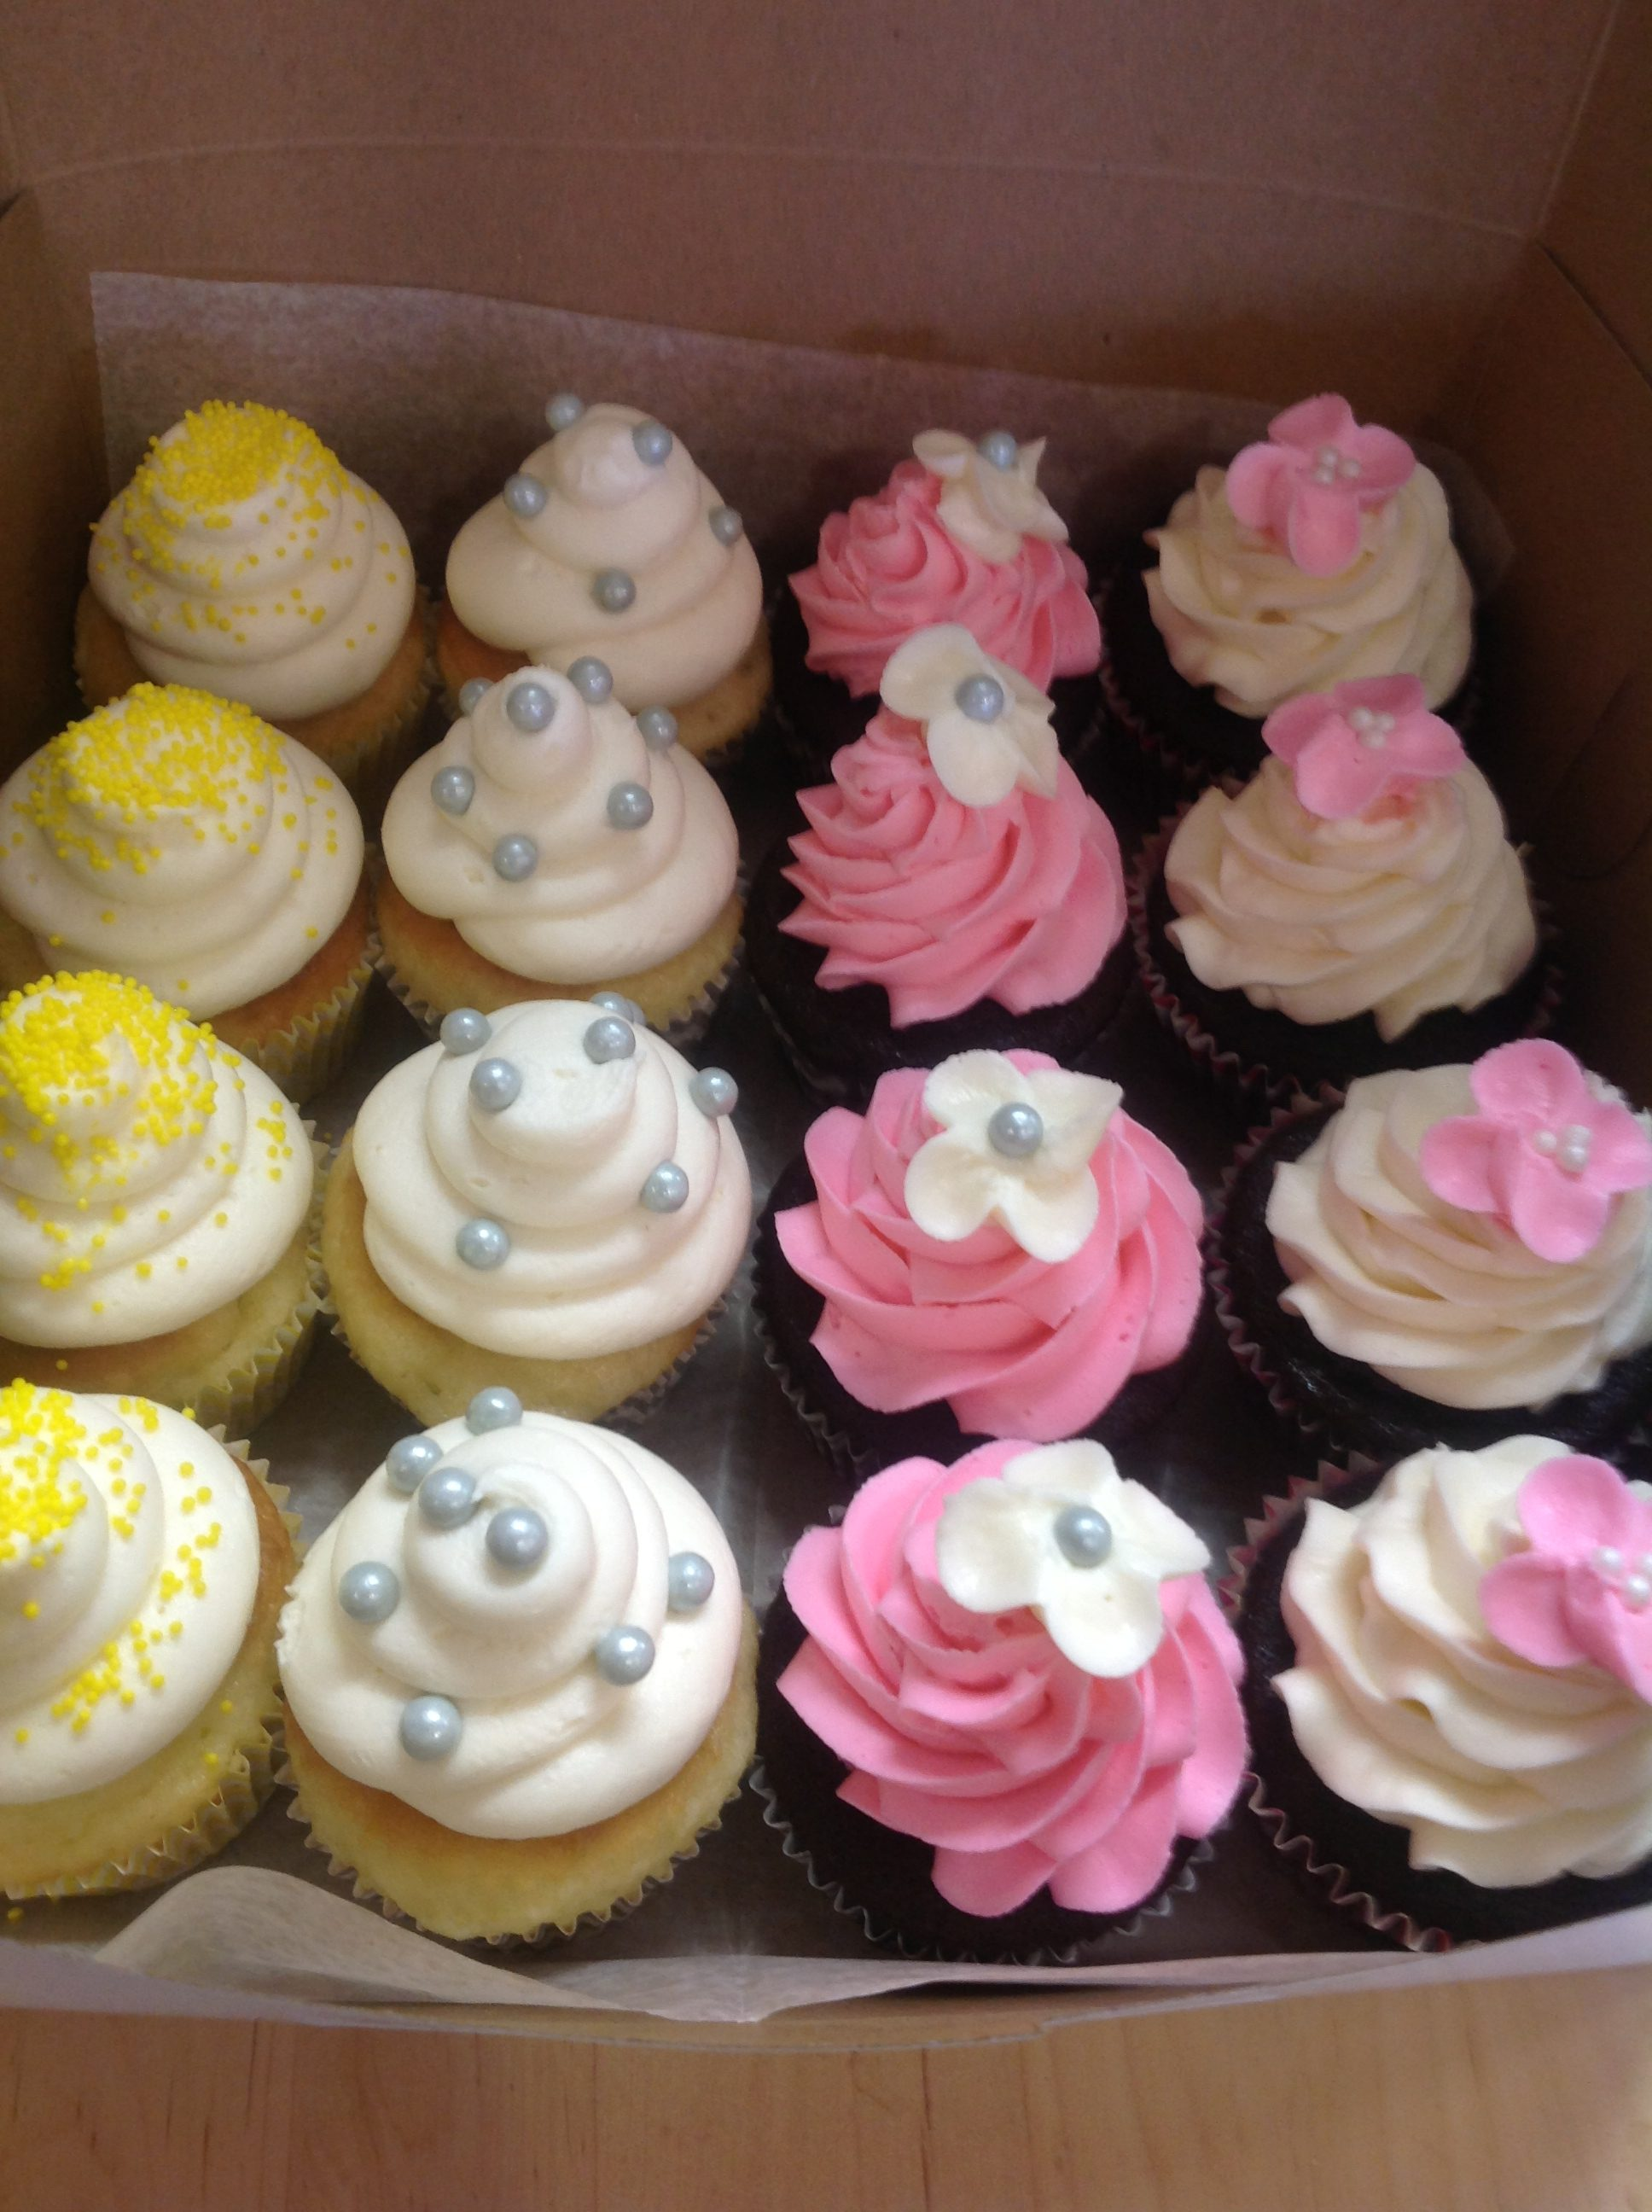 Assorted Cupcakes at Dolce and Biscotti Italian Bakery